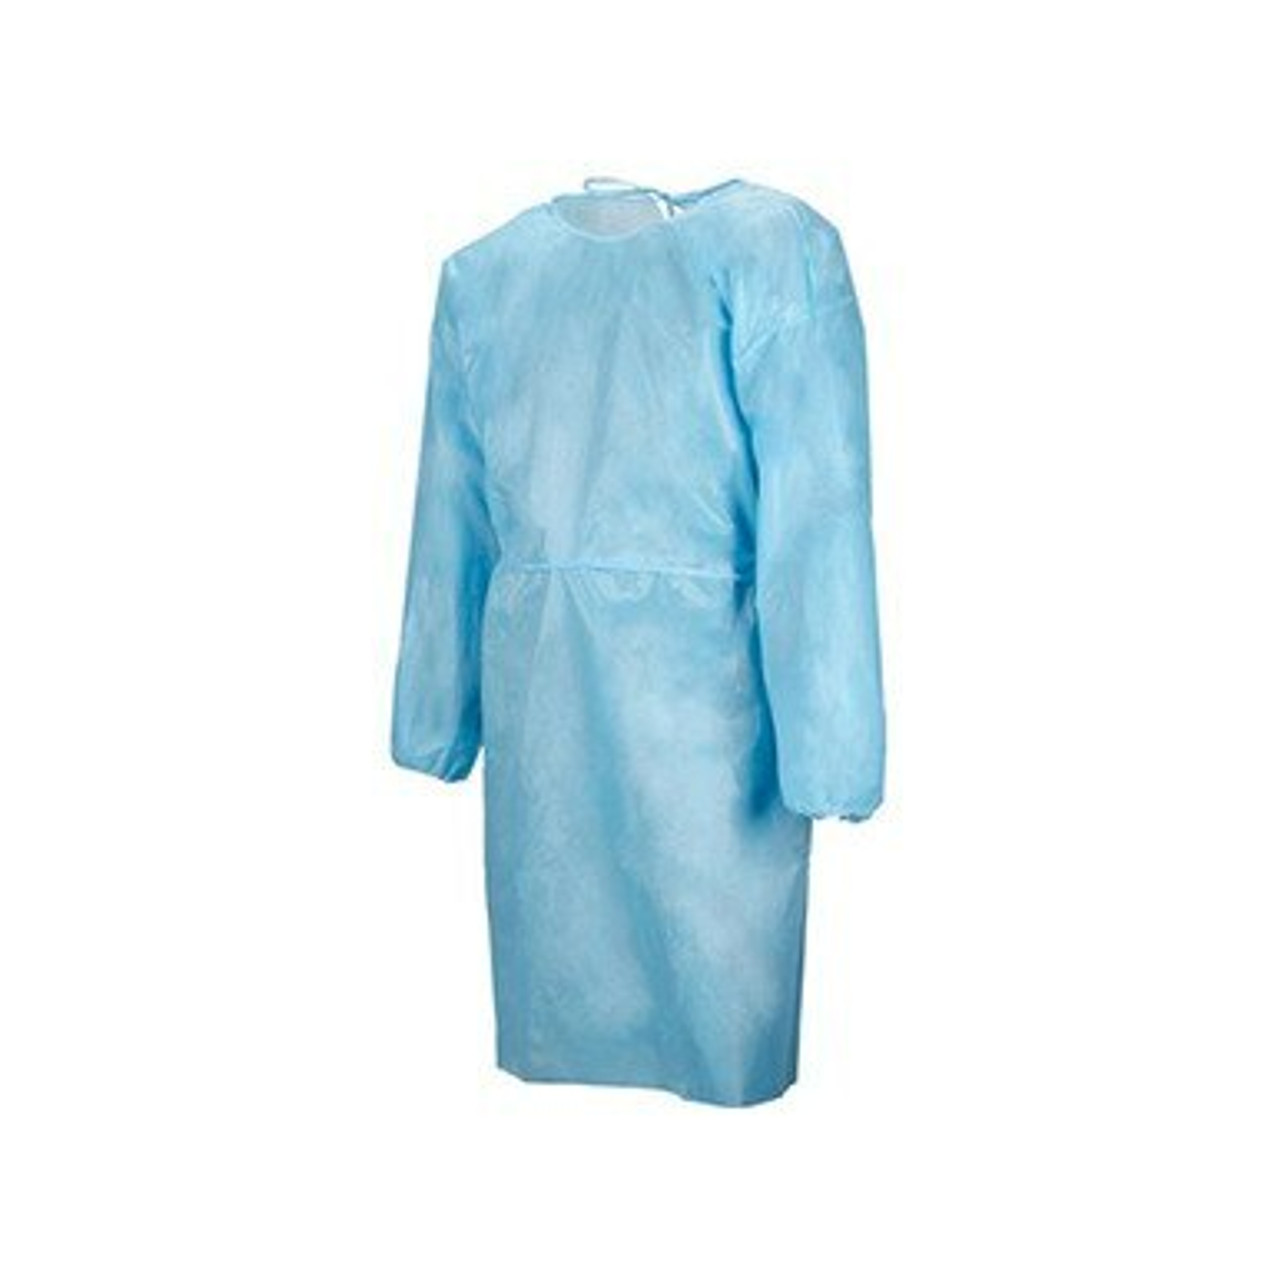 Medical Isolation Gowns  100 Pack (Non-woven TPU)